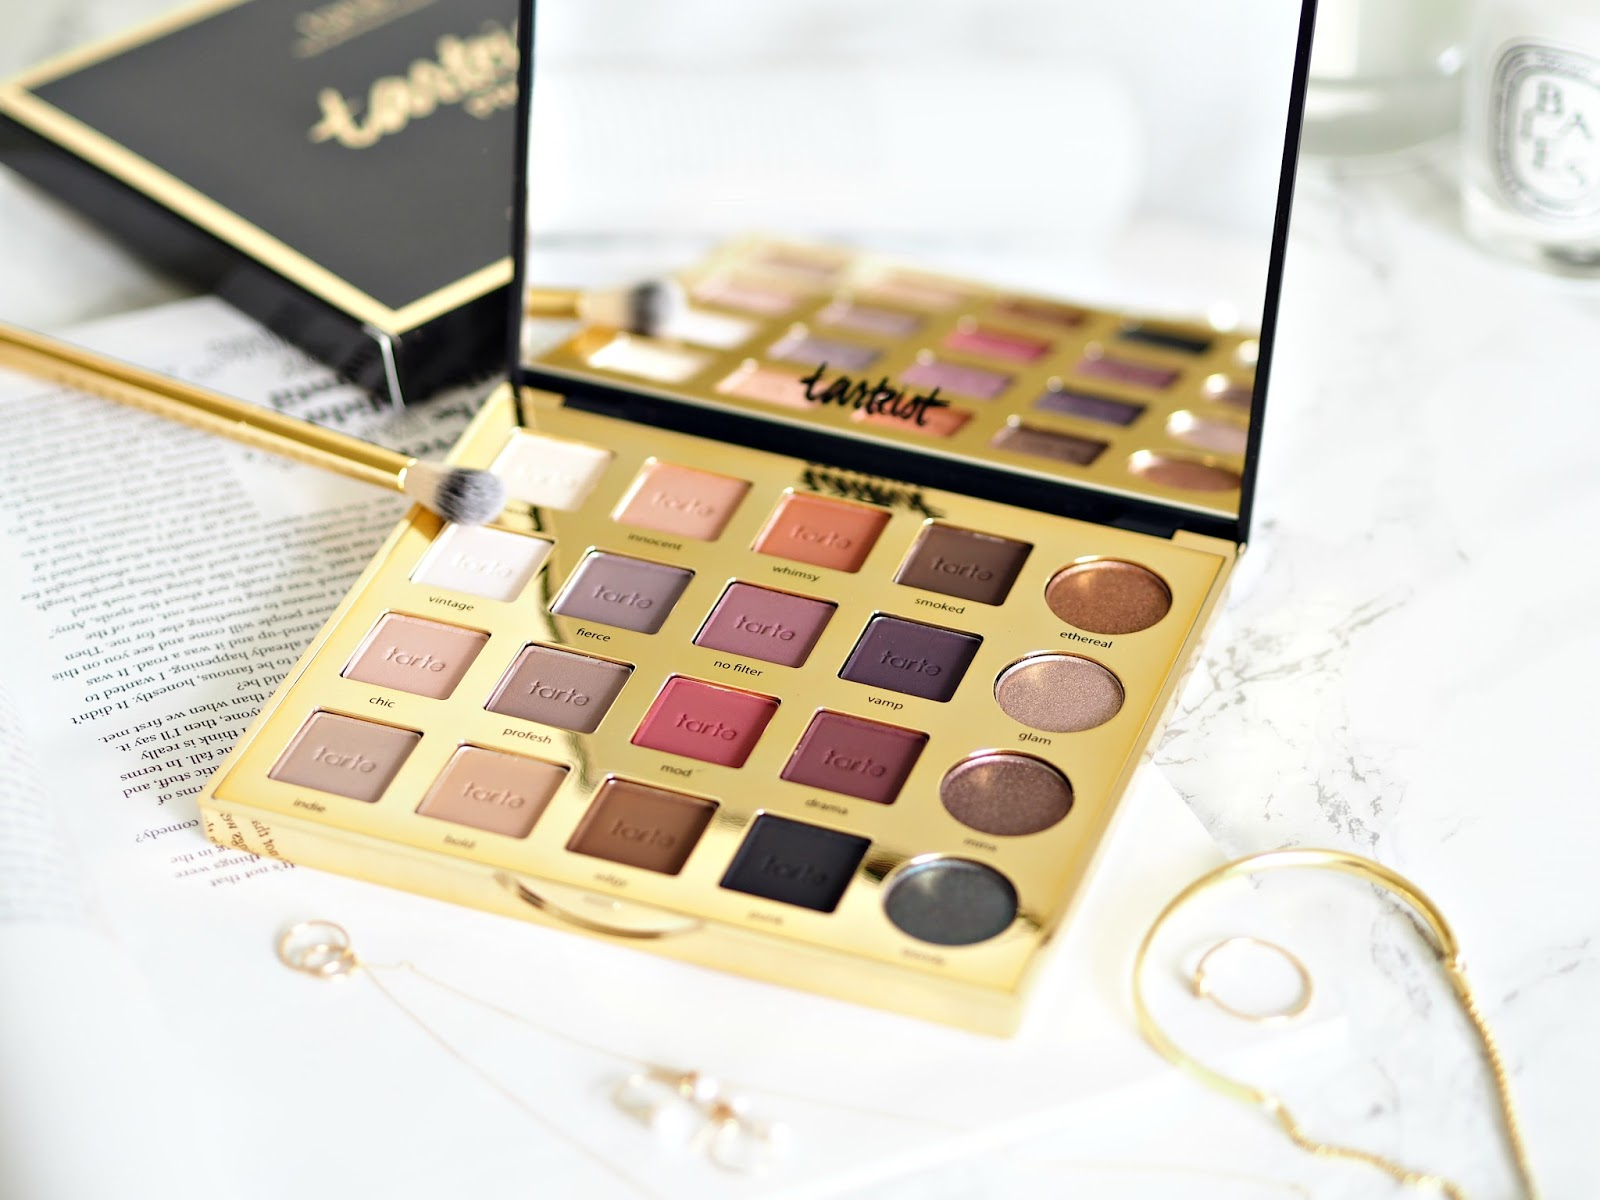 Tarte Pro Amazonian Clay Eyeshadow Palette Review & Swatches